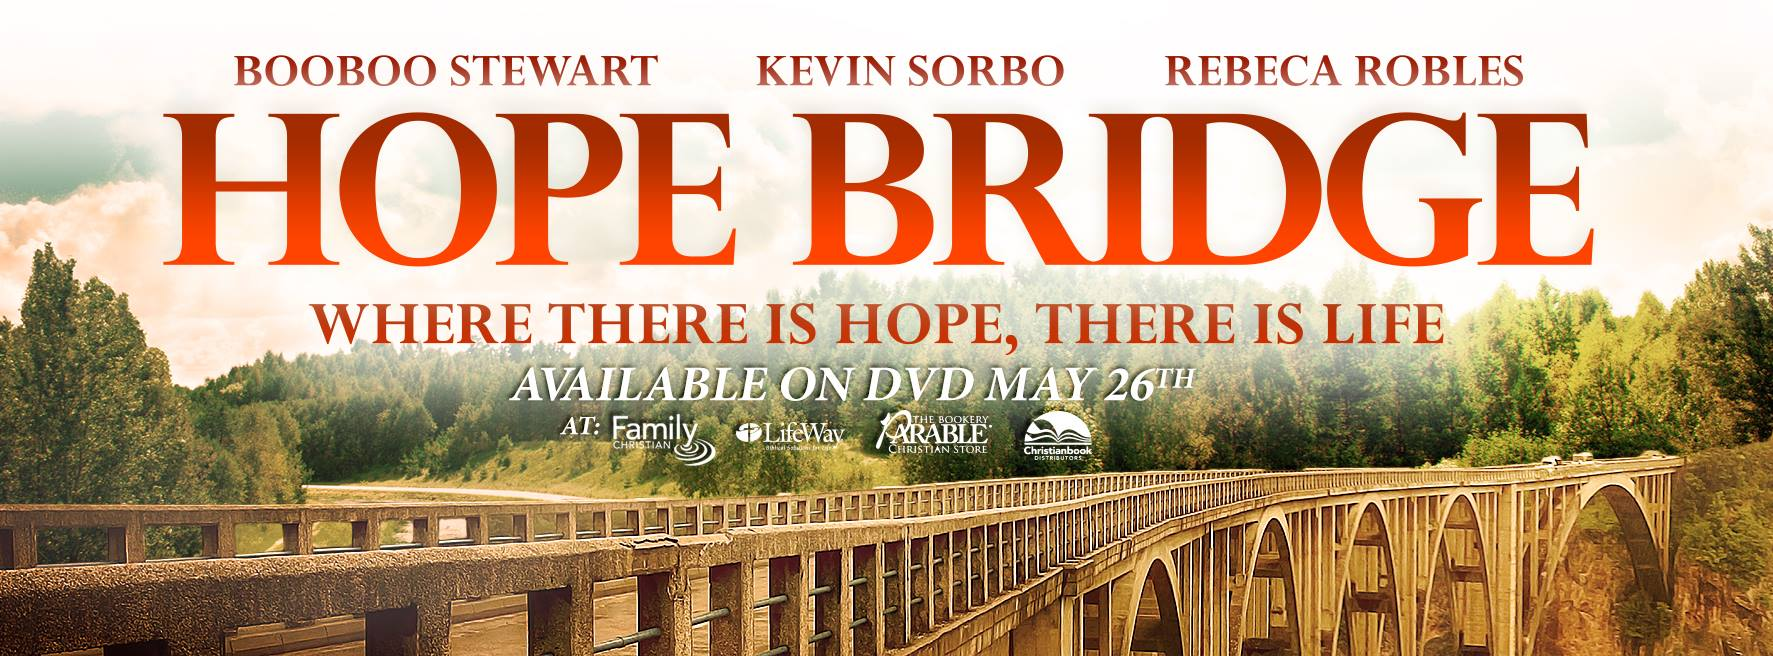 Hope Bridge The Movie